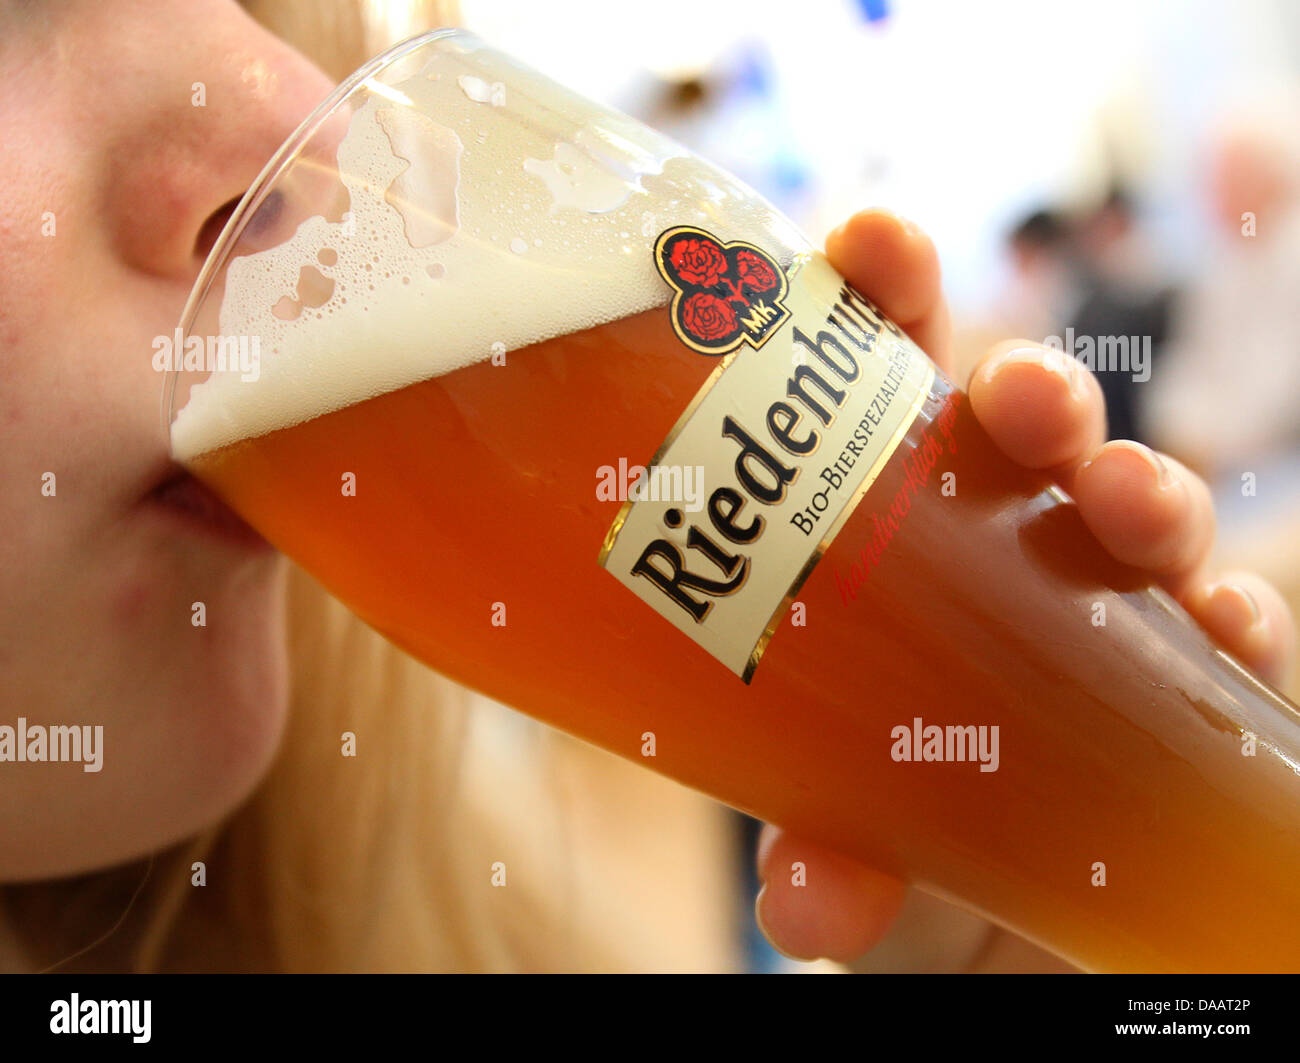 Bavarian organic wheat beer is one trend during the Green